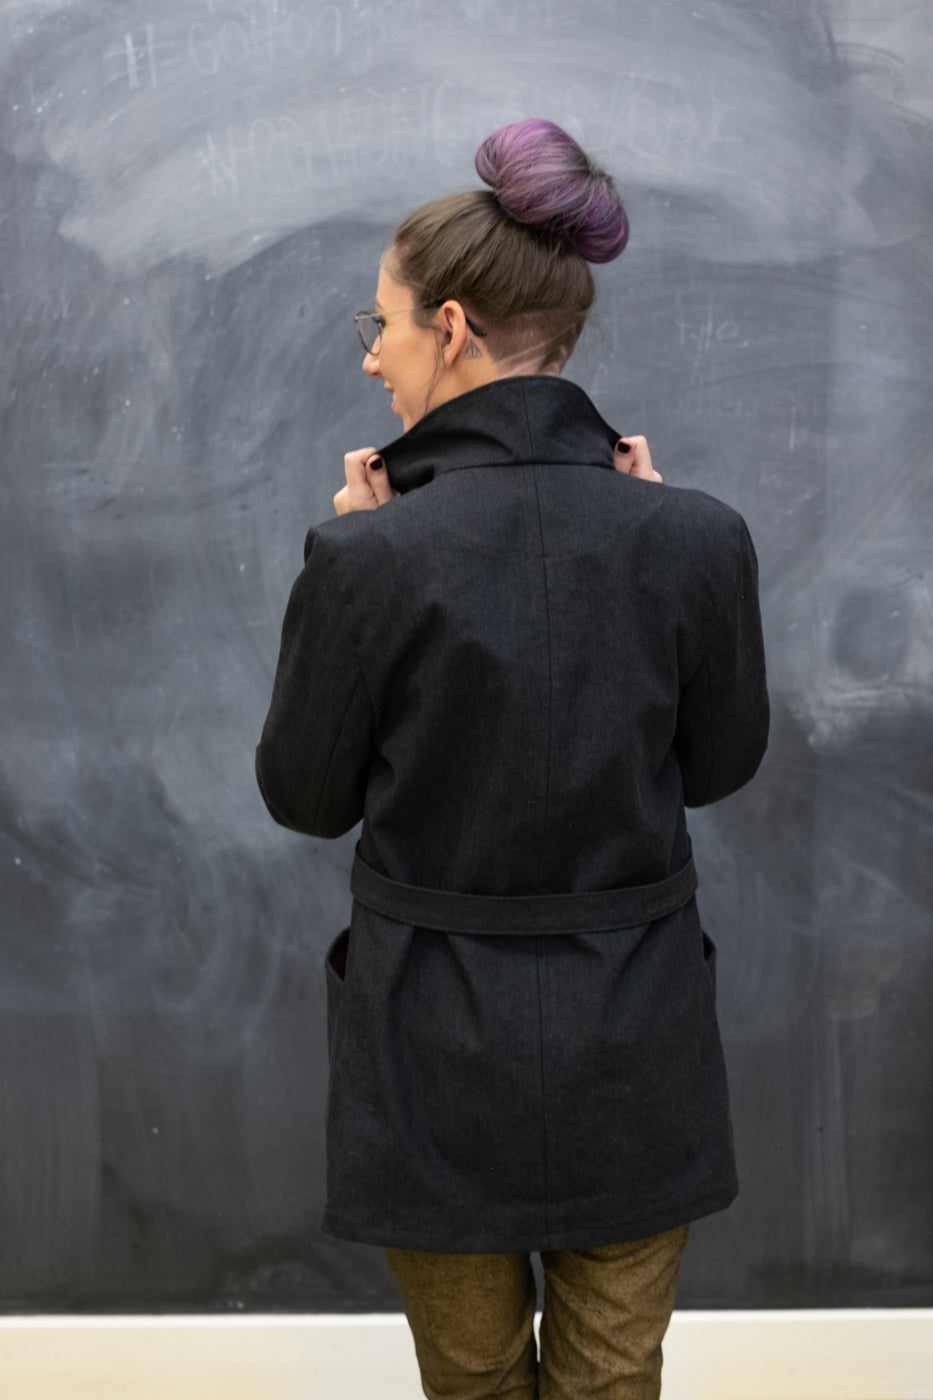 Women wearing Royo Denim Black jacket facing a chalkboard looking over her left shoulder with her handing holding the collar.